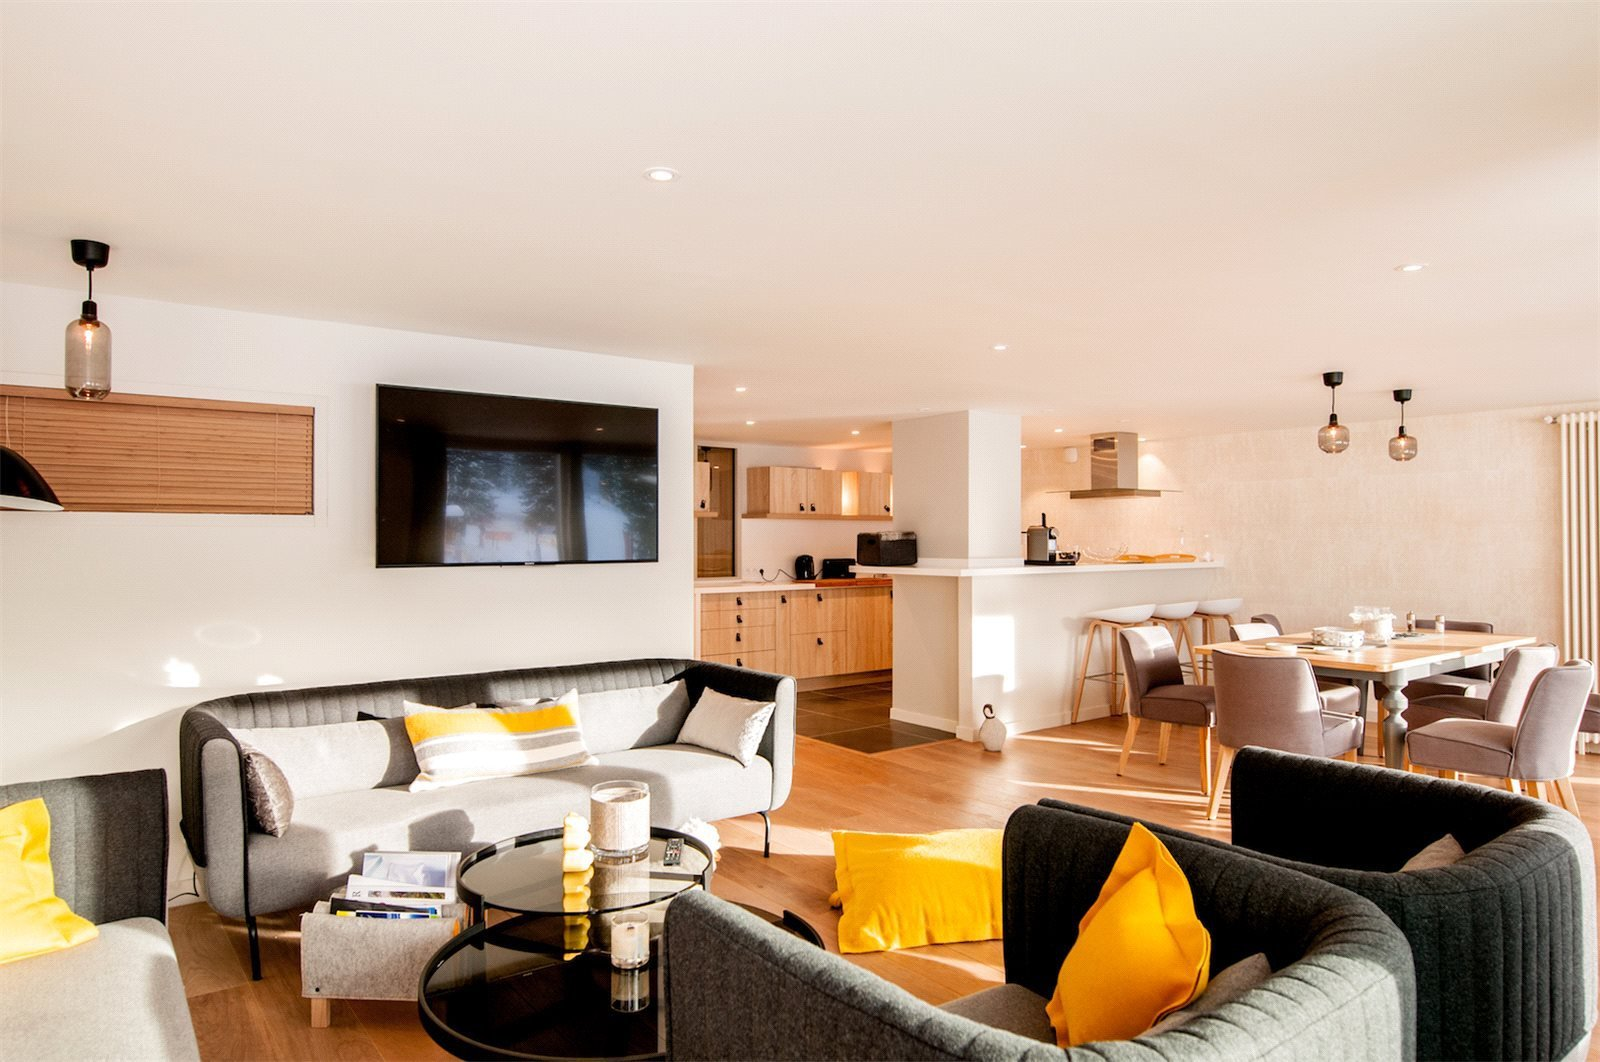 Rental Apartment Courchevel Well presented 4 bedrooWithin a private residence of high standing in the heart of Courchevel resort